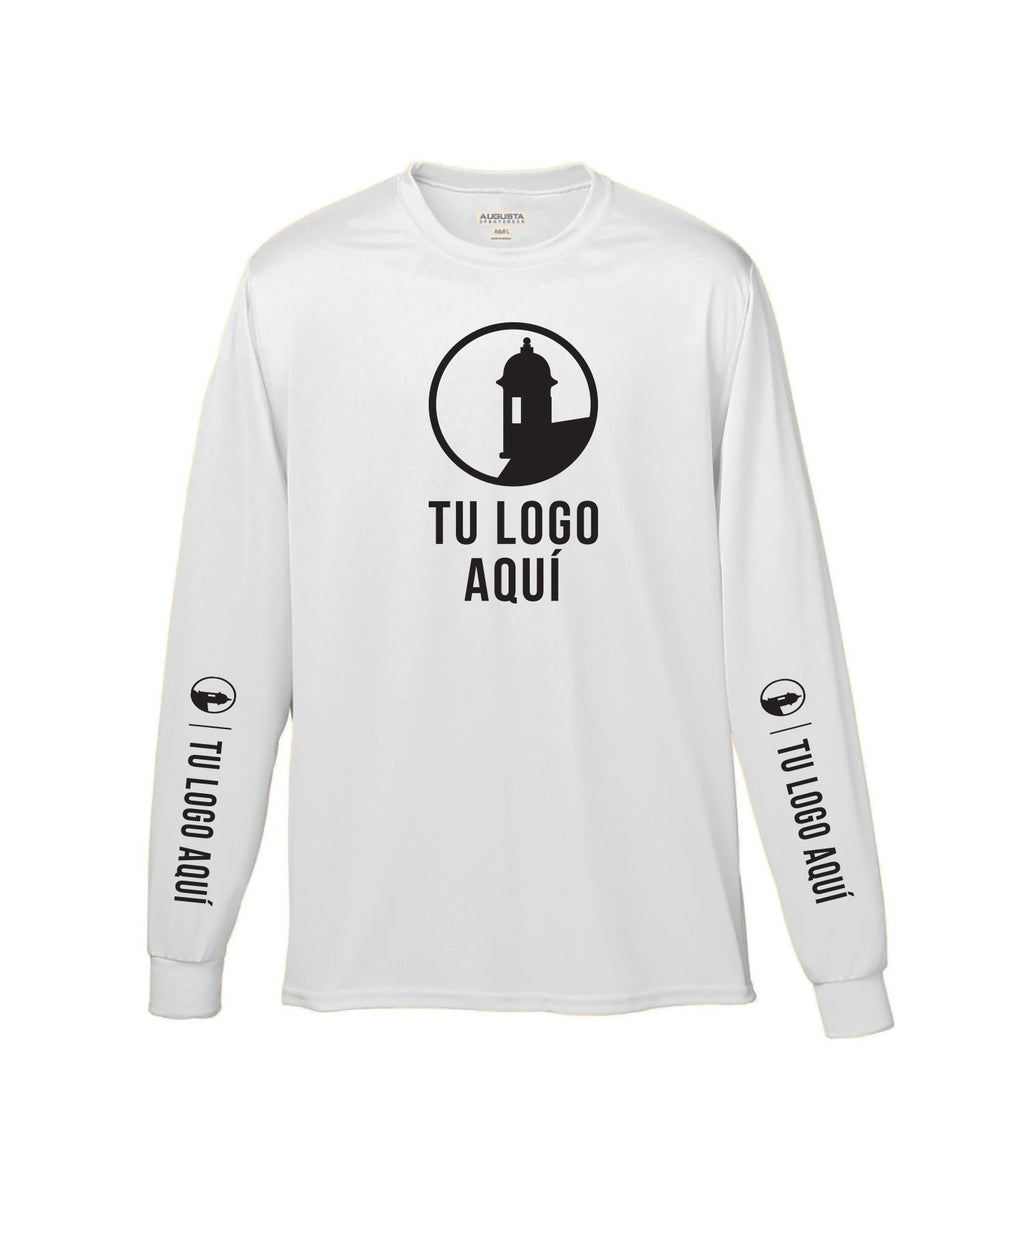 Youth Unisex Long Sleeve DRI-FIT T-Shirt